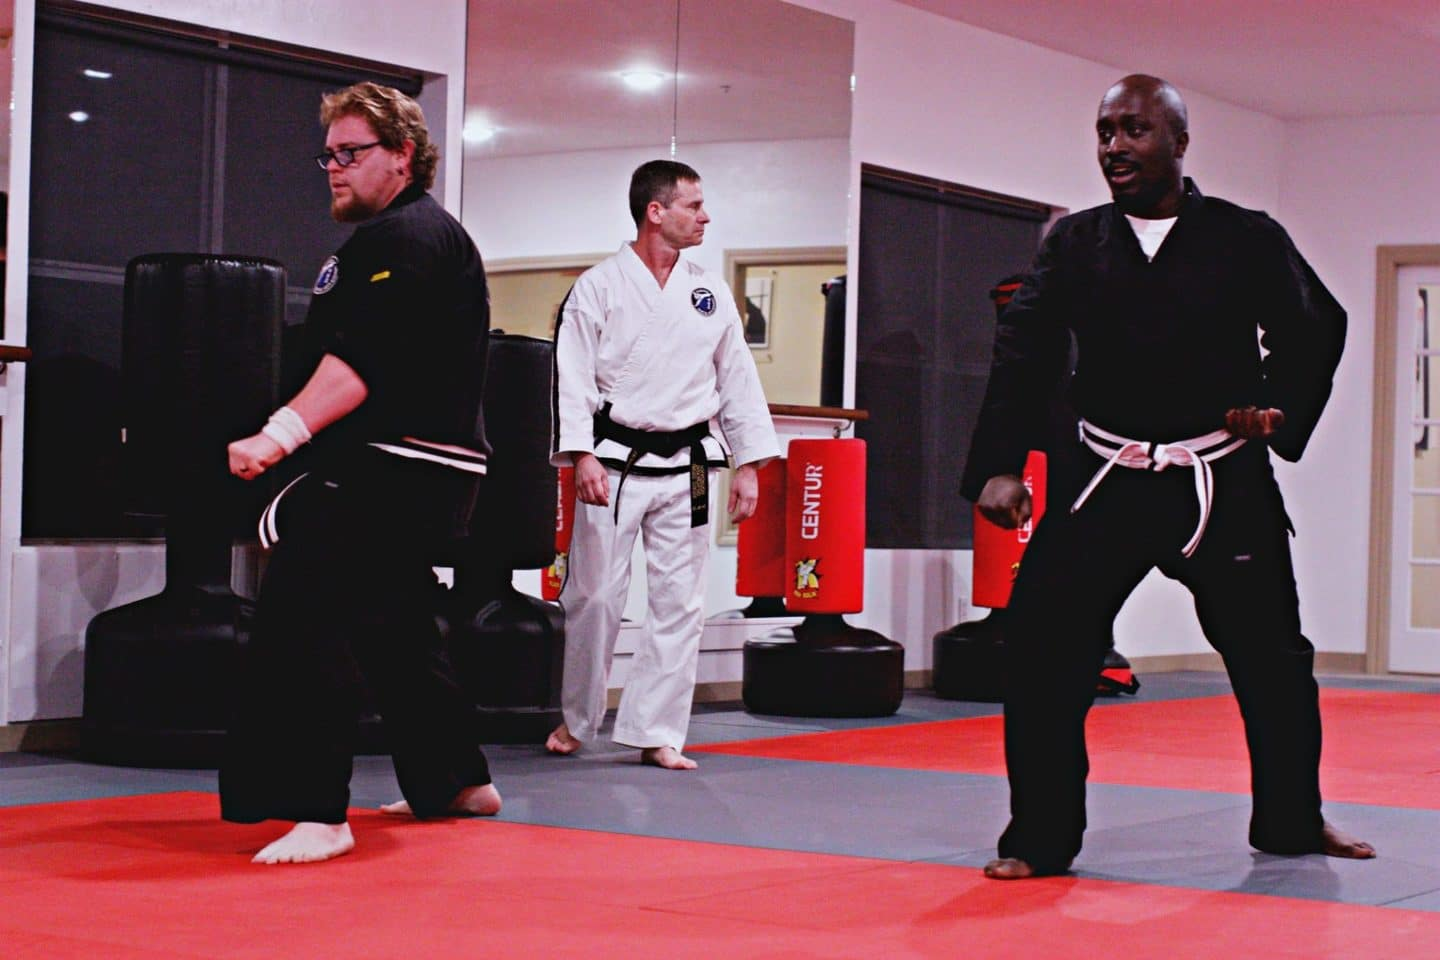 adult taekwondo students practicing forms with instructor in the background